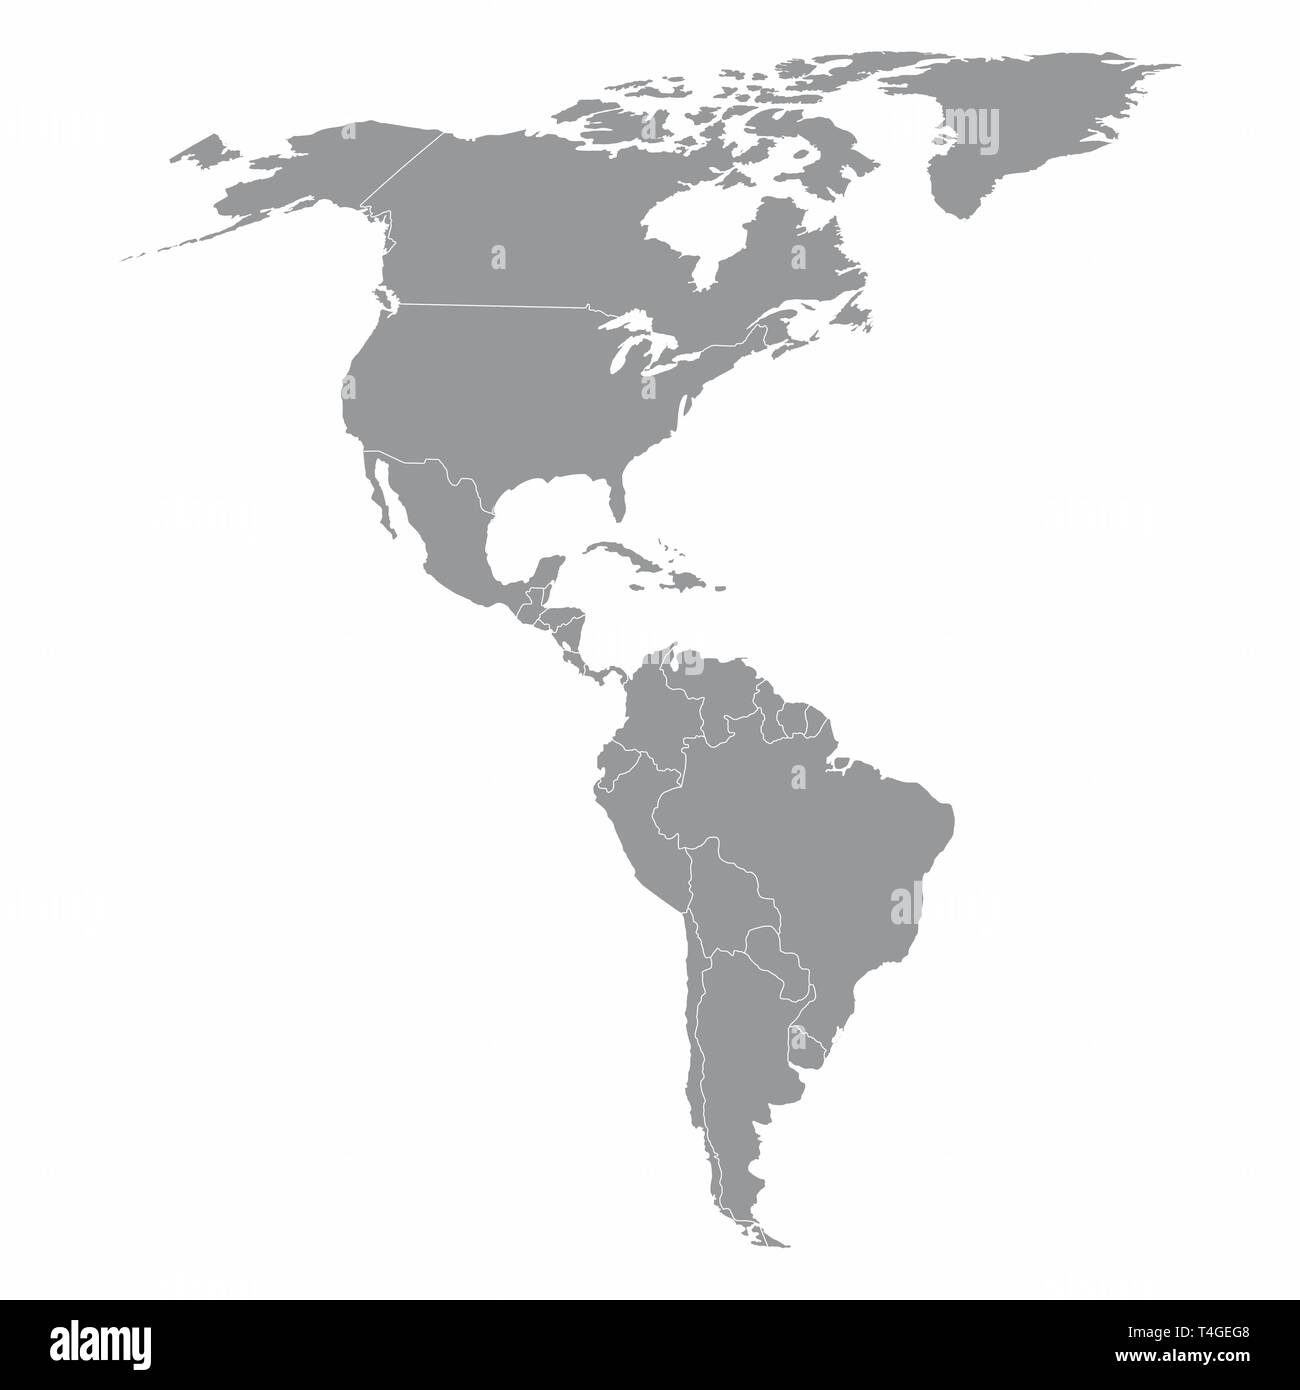 North South America Map Mexico Stock Photos & North South ...